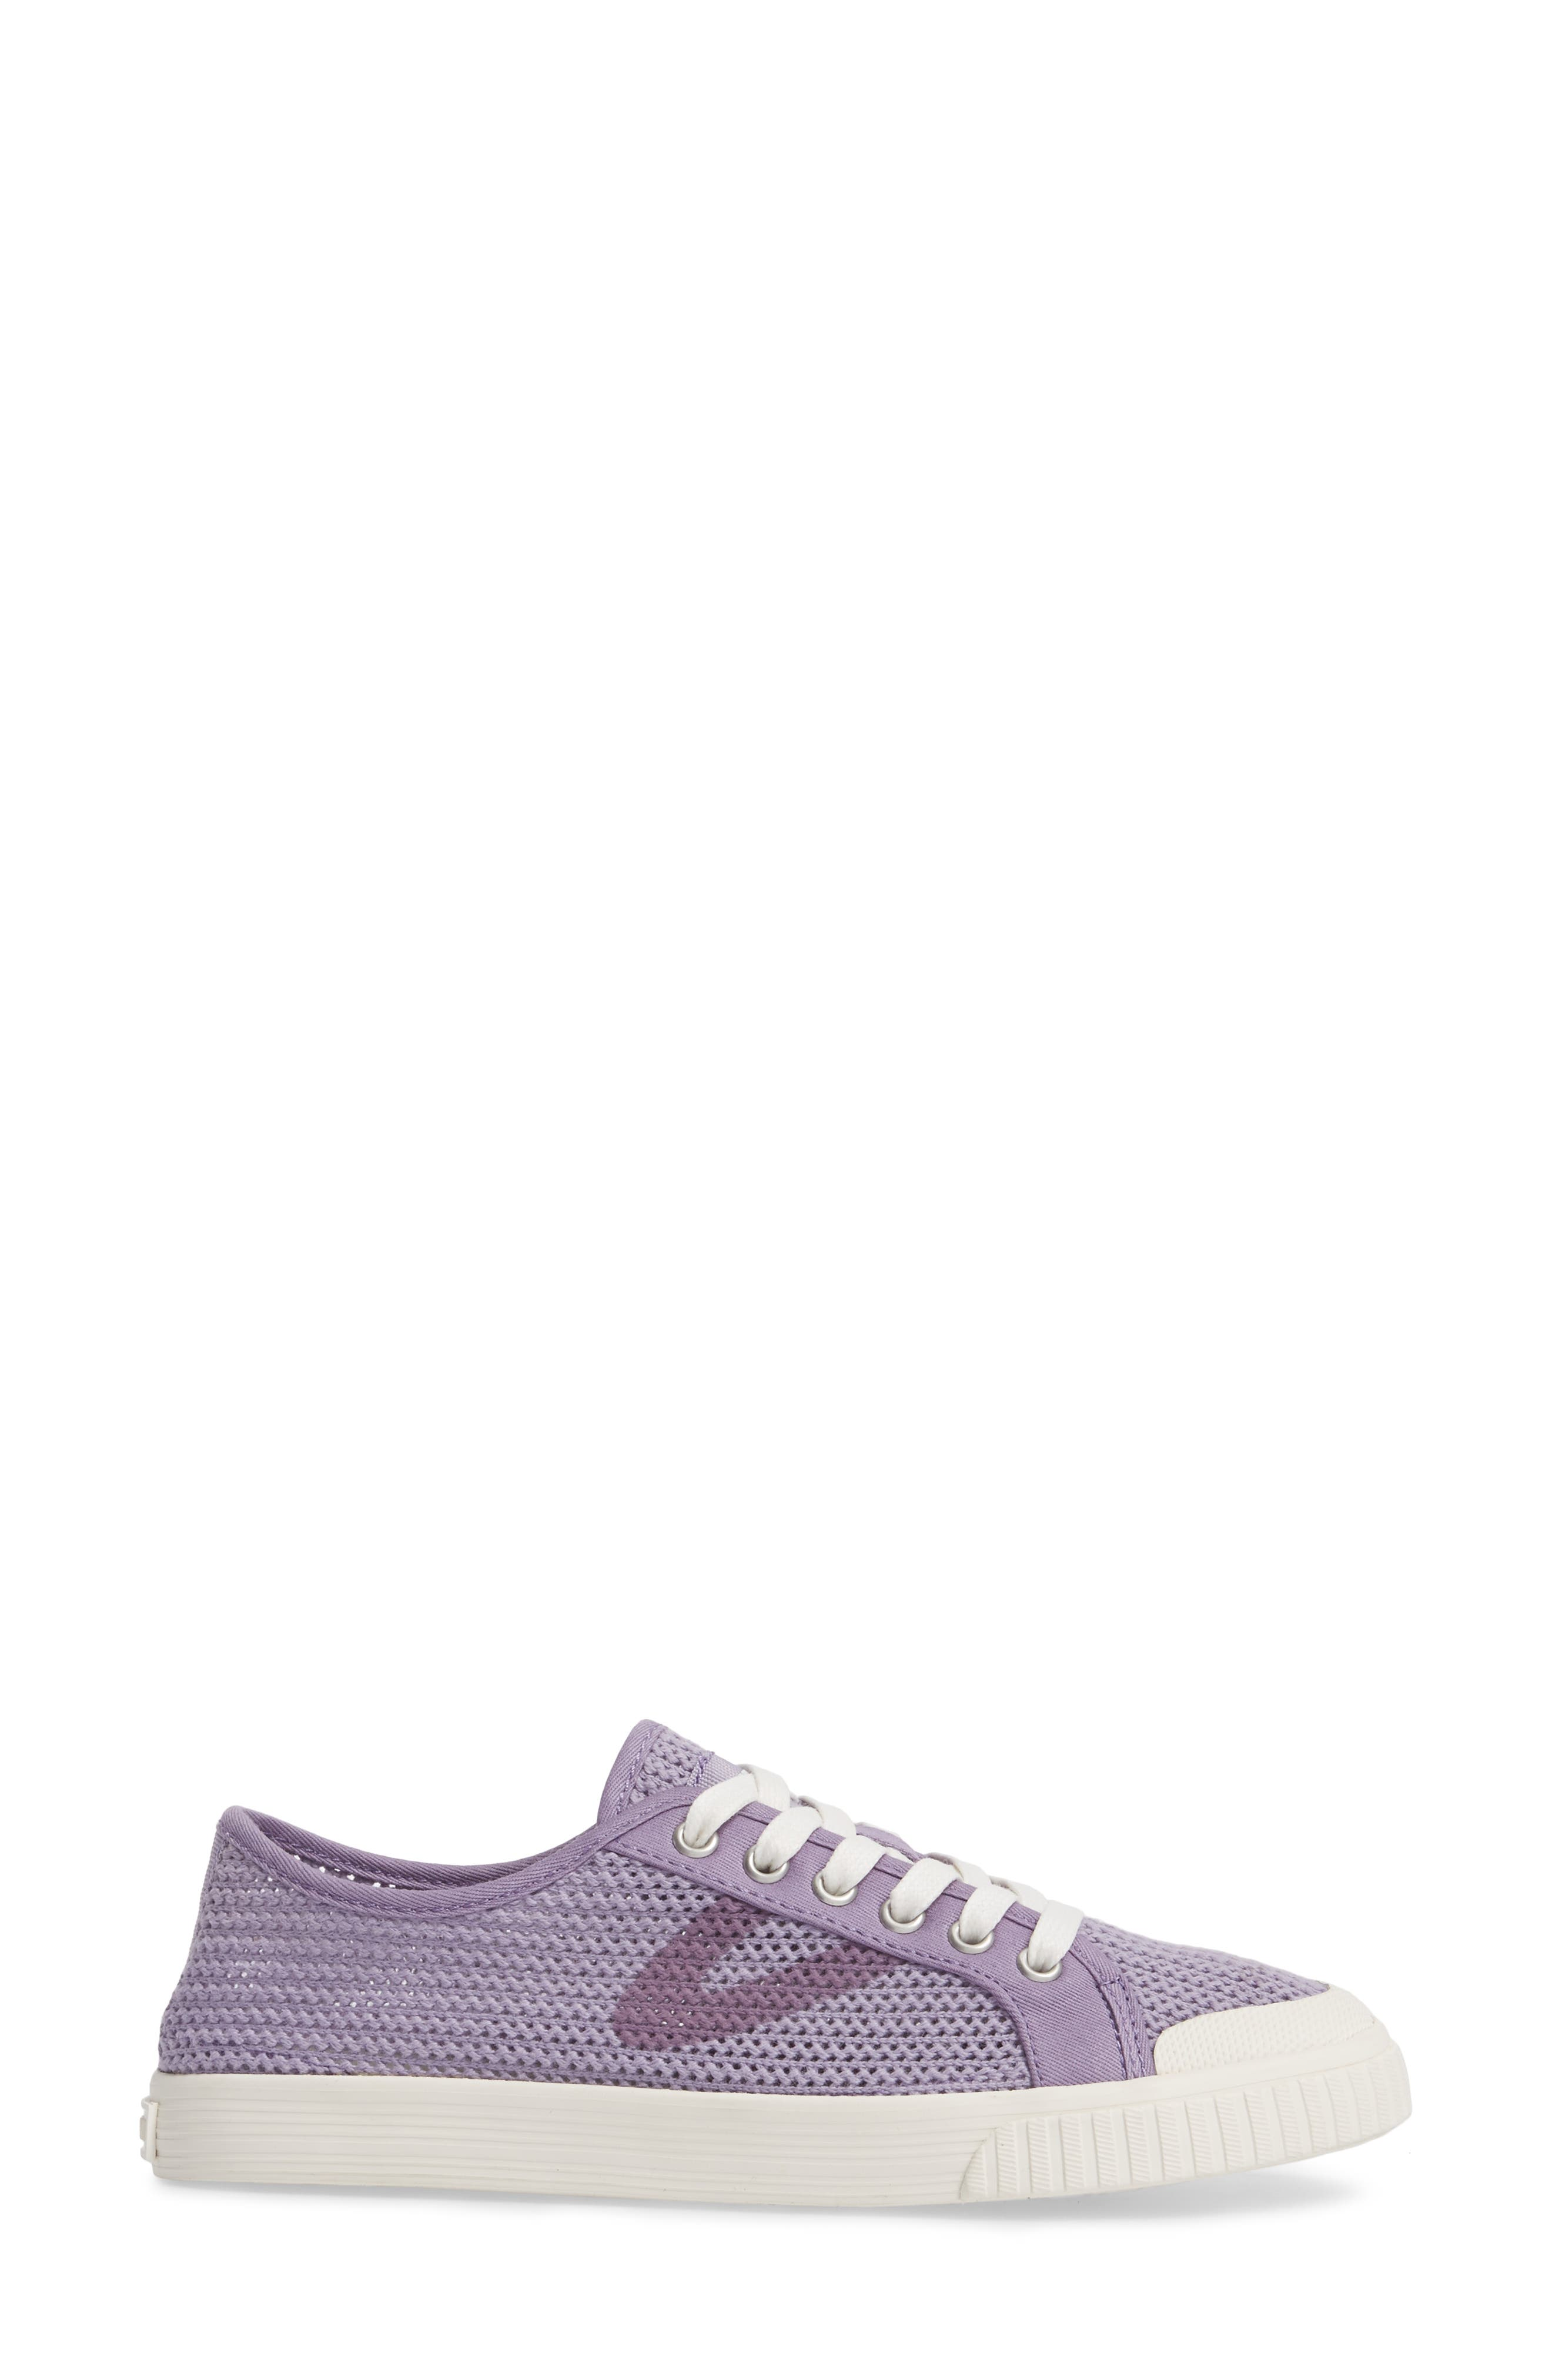 'Tournament Net' Sneaker,                             Alternate thumbnail 3, color,                             Lavender Cotton Mesh